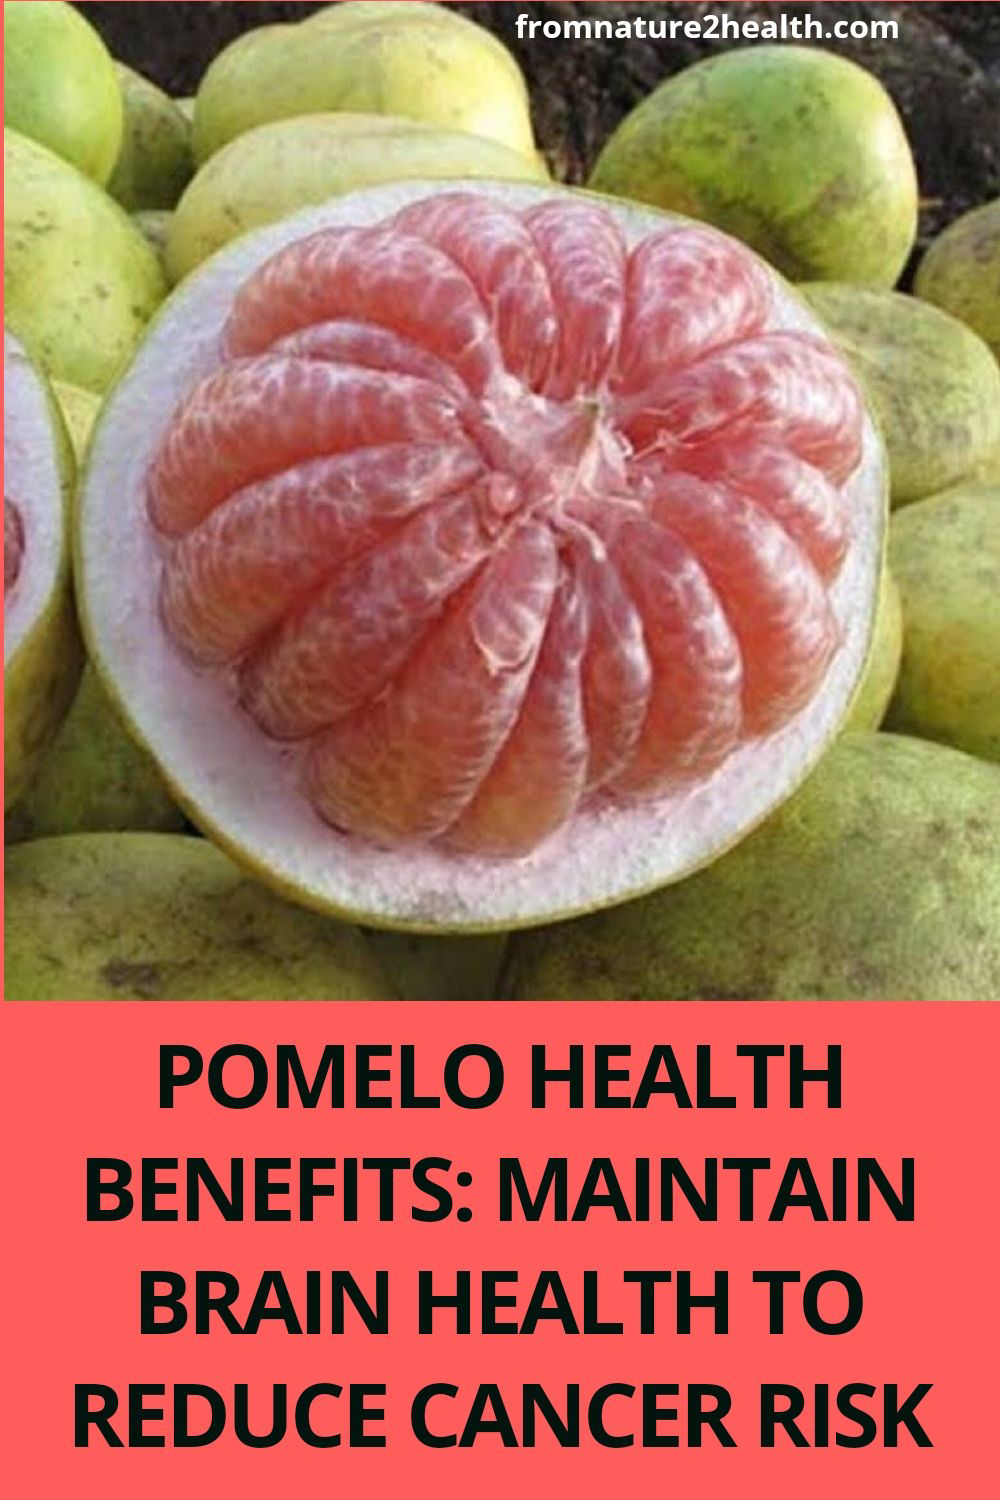 Pomelo Health Benefits: Maintain Brain Health to Reduce Cancer Risk